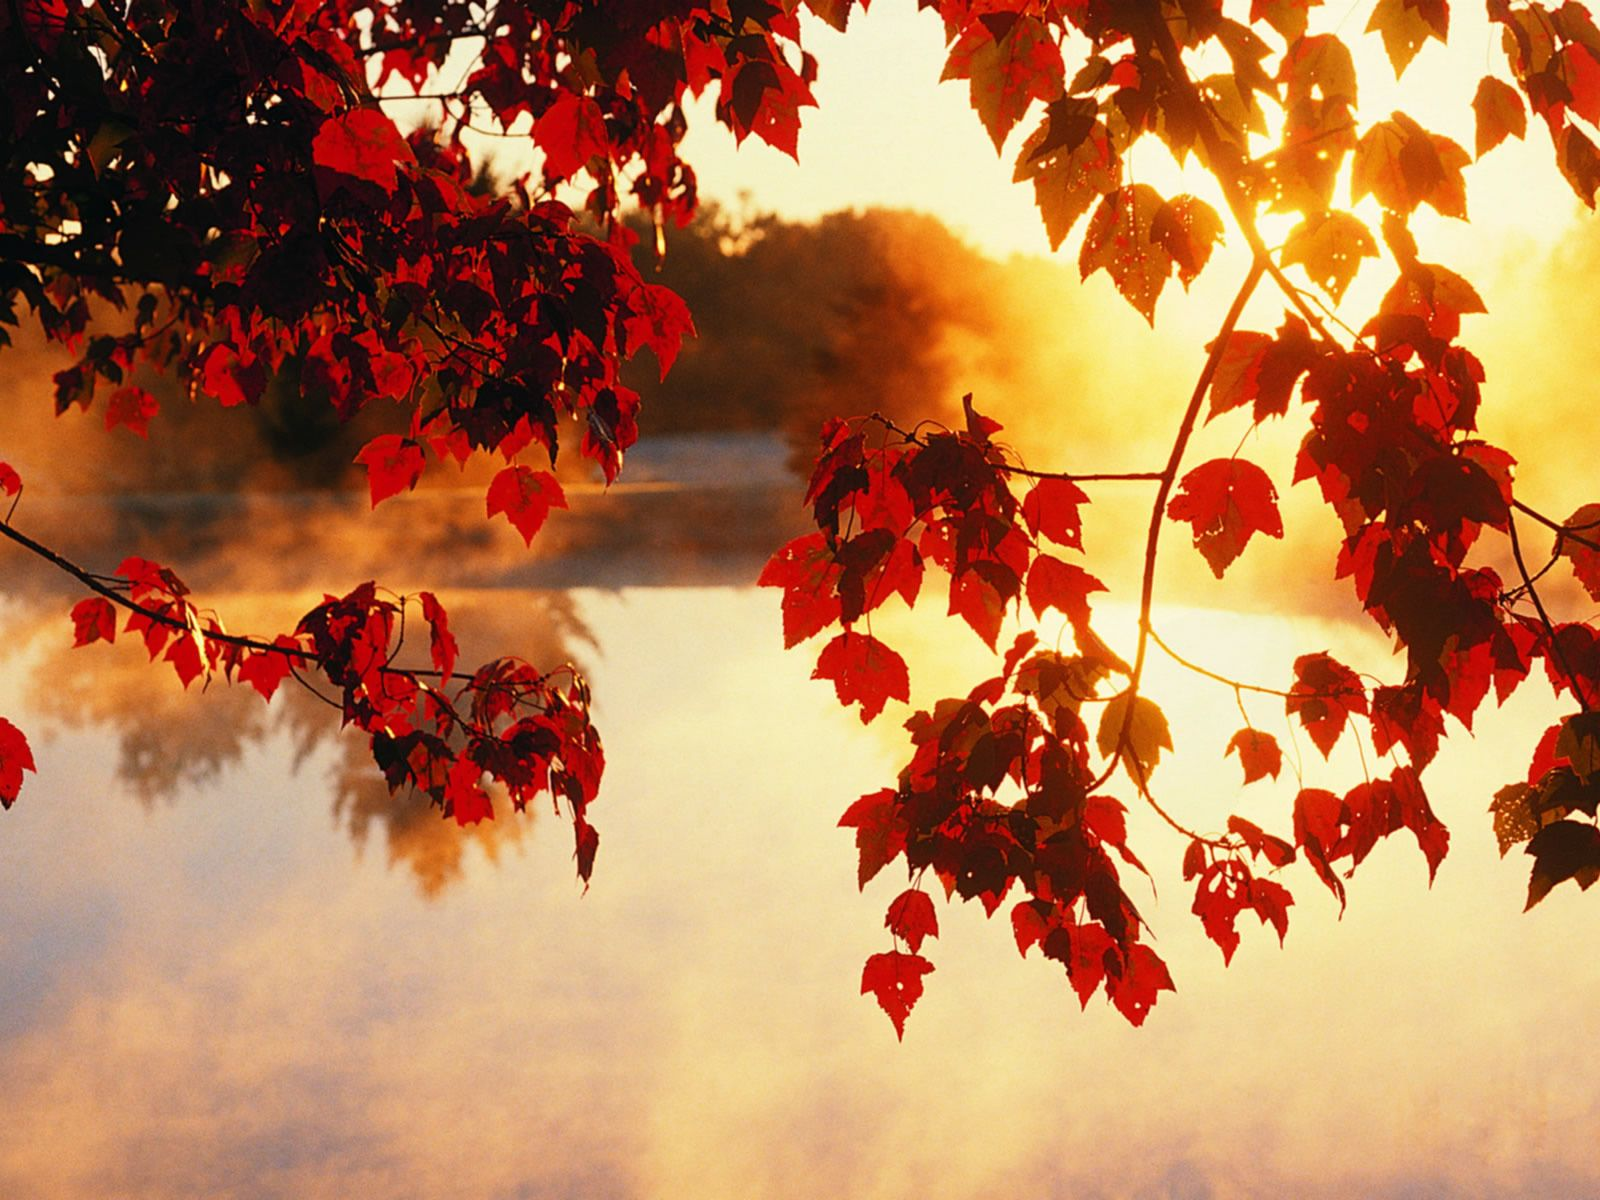 Red Autumn Sunshine Wallpaper Hd With Images Fall Wallpaper